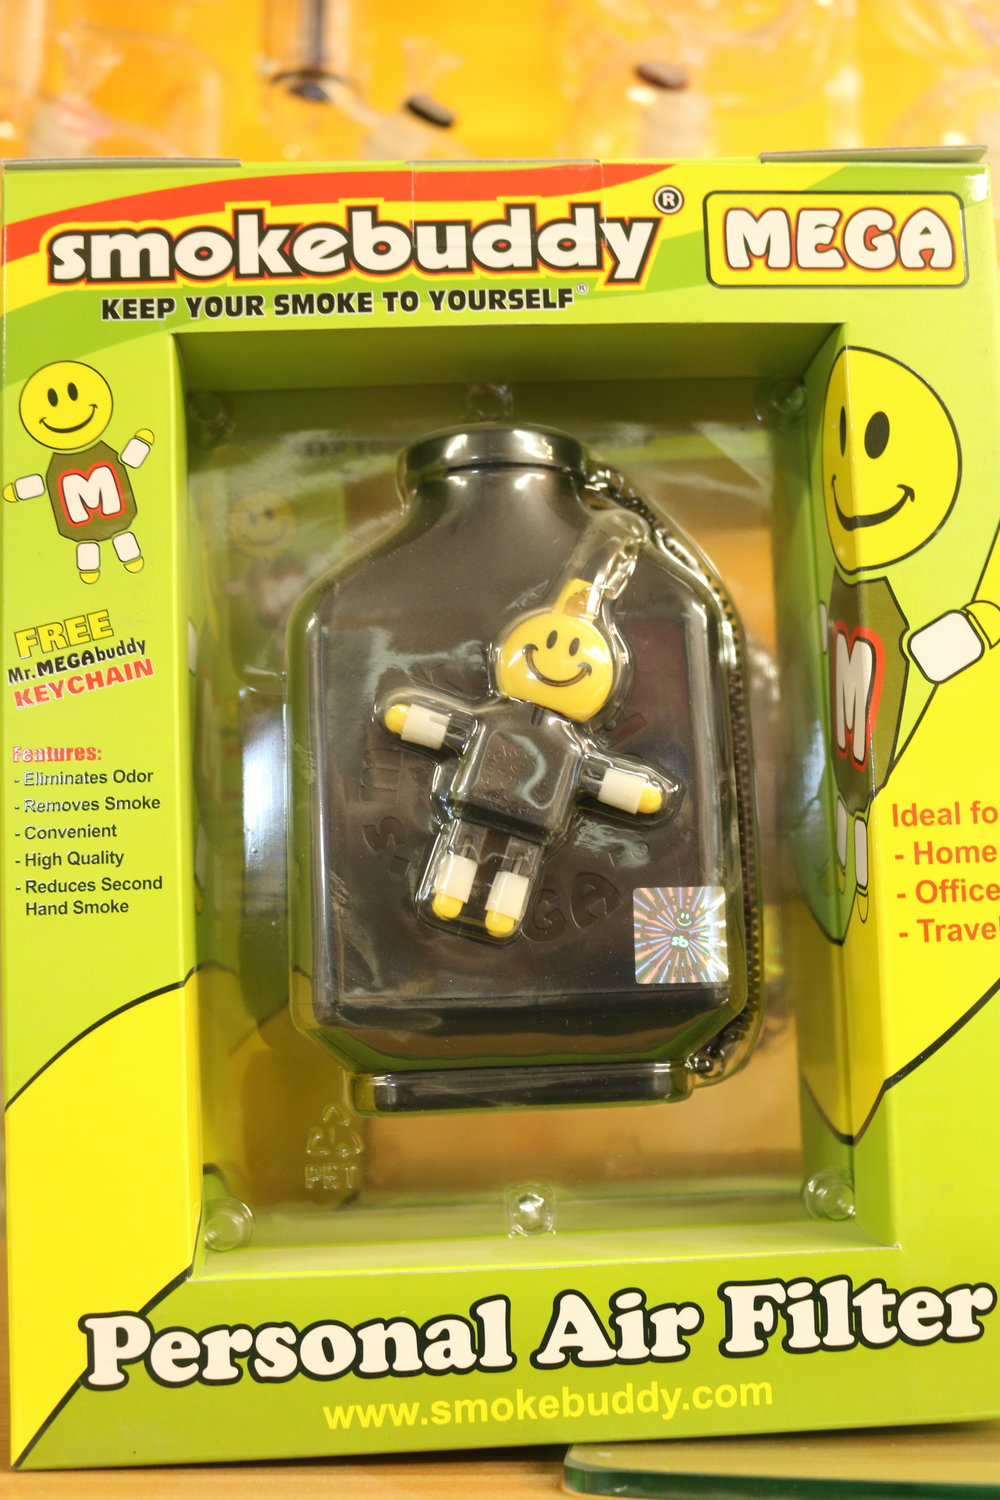 Mega Size of Smokebuddy (black and white available)